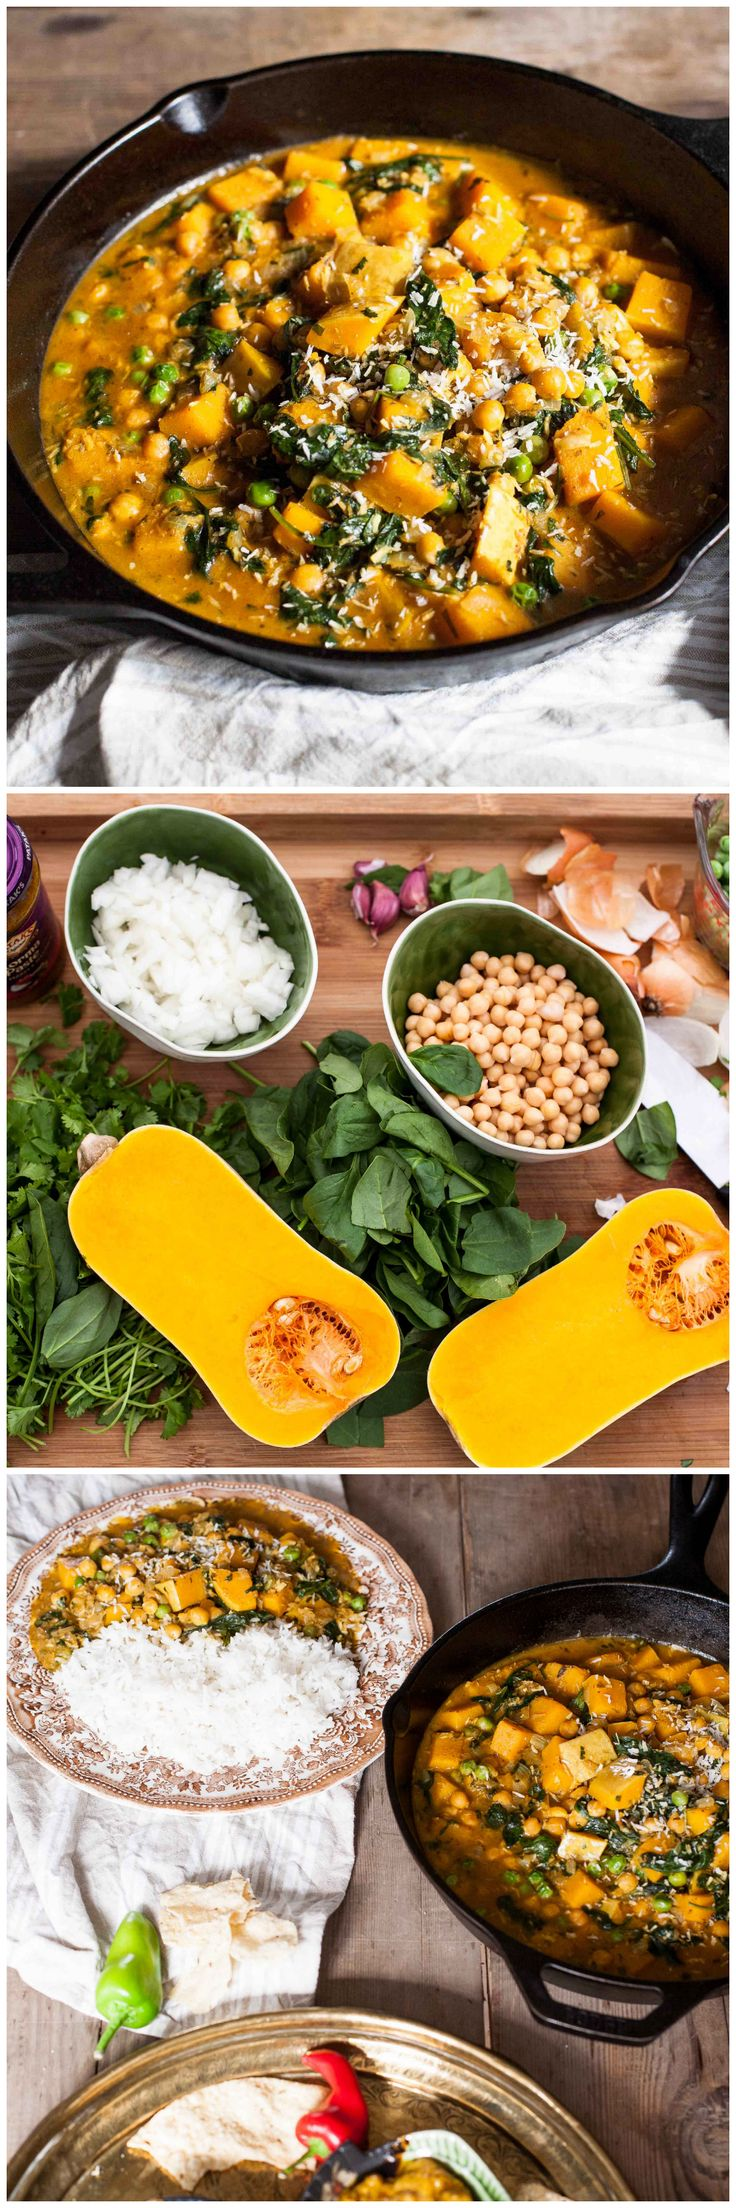 Chickpea and Butternut Squash Curry by vikalinka #Curry #Chickpea #Butternut_Squash #Healthy